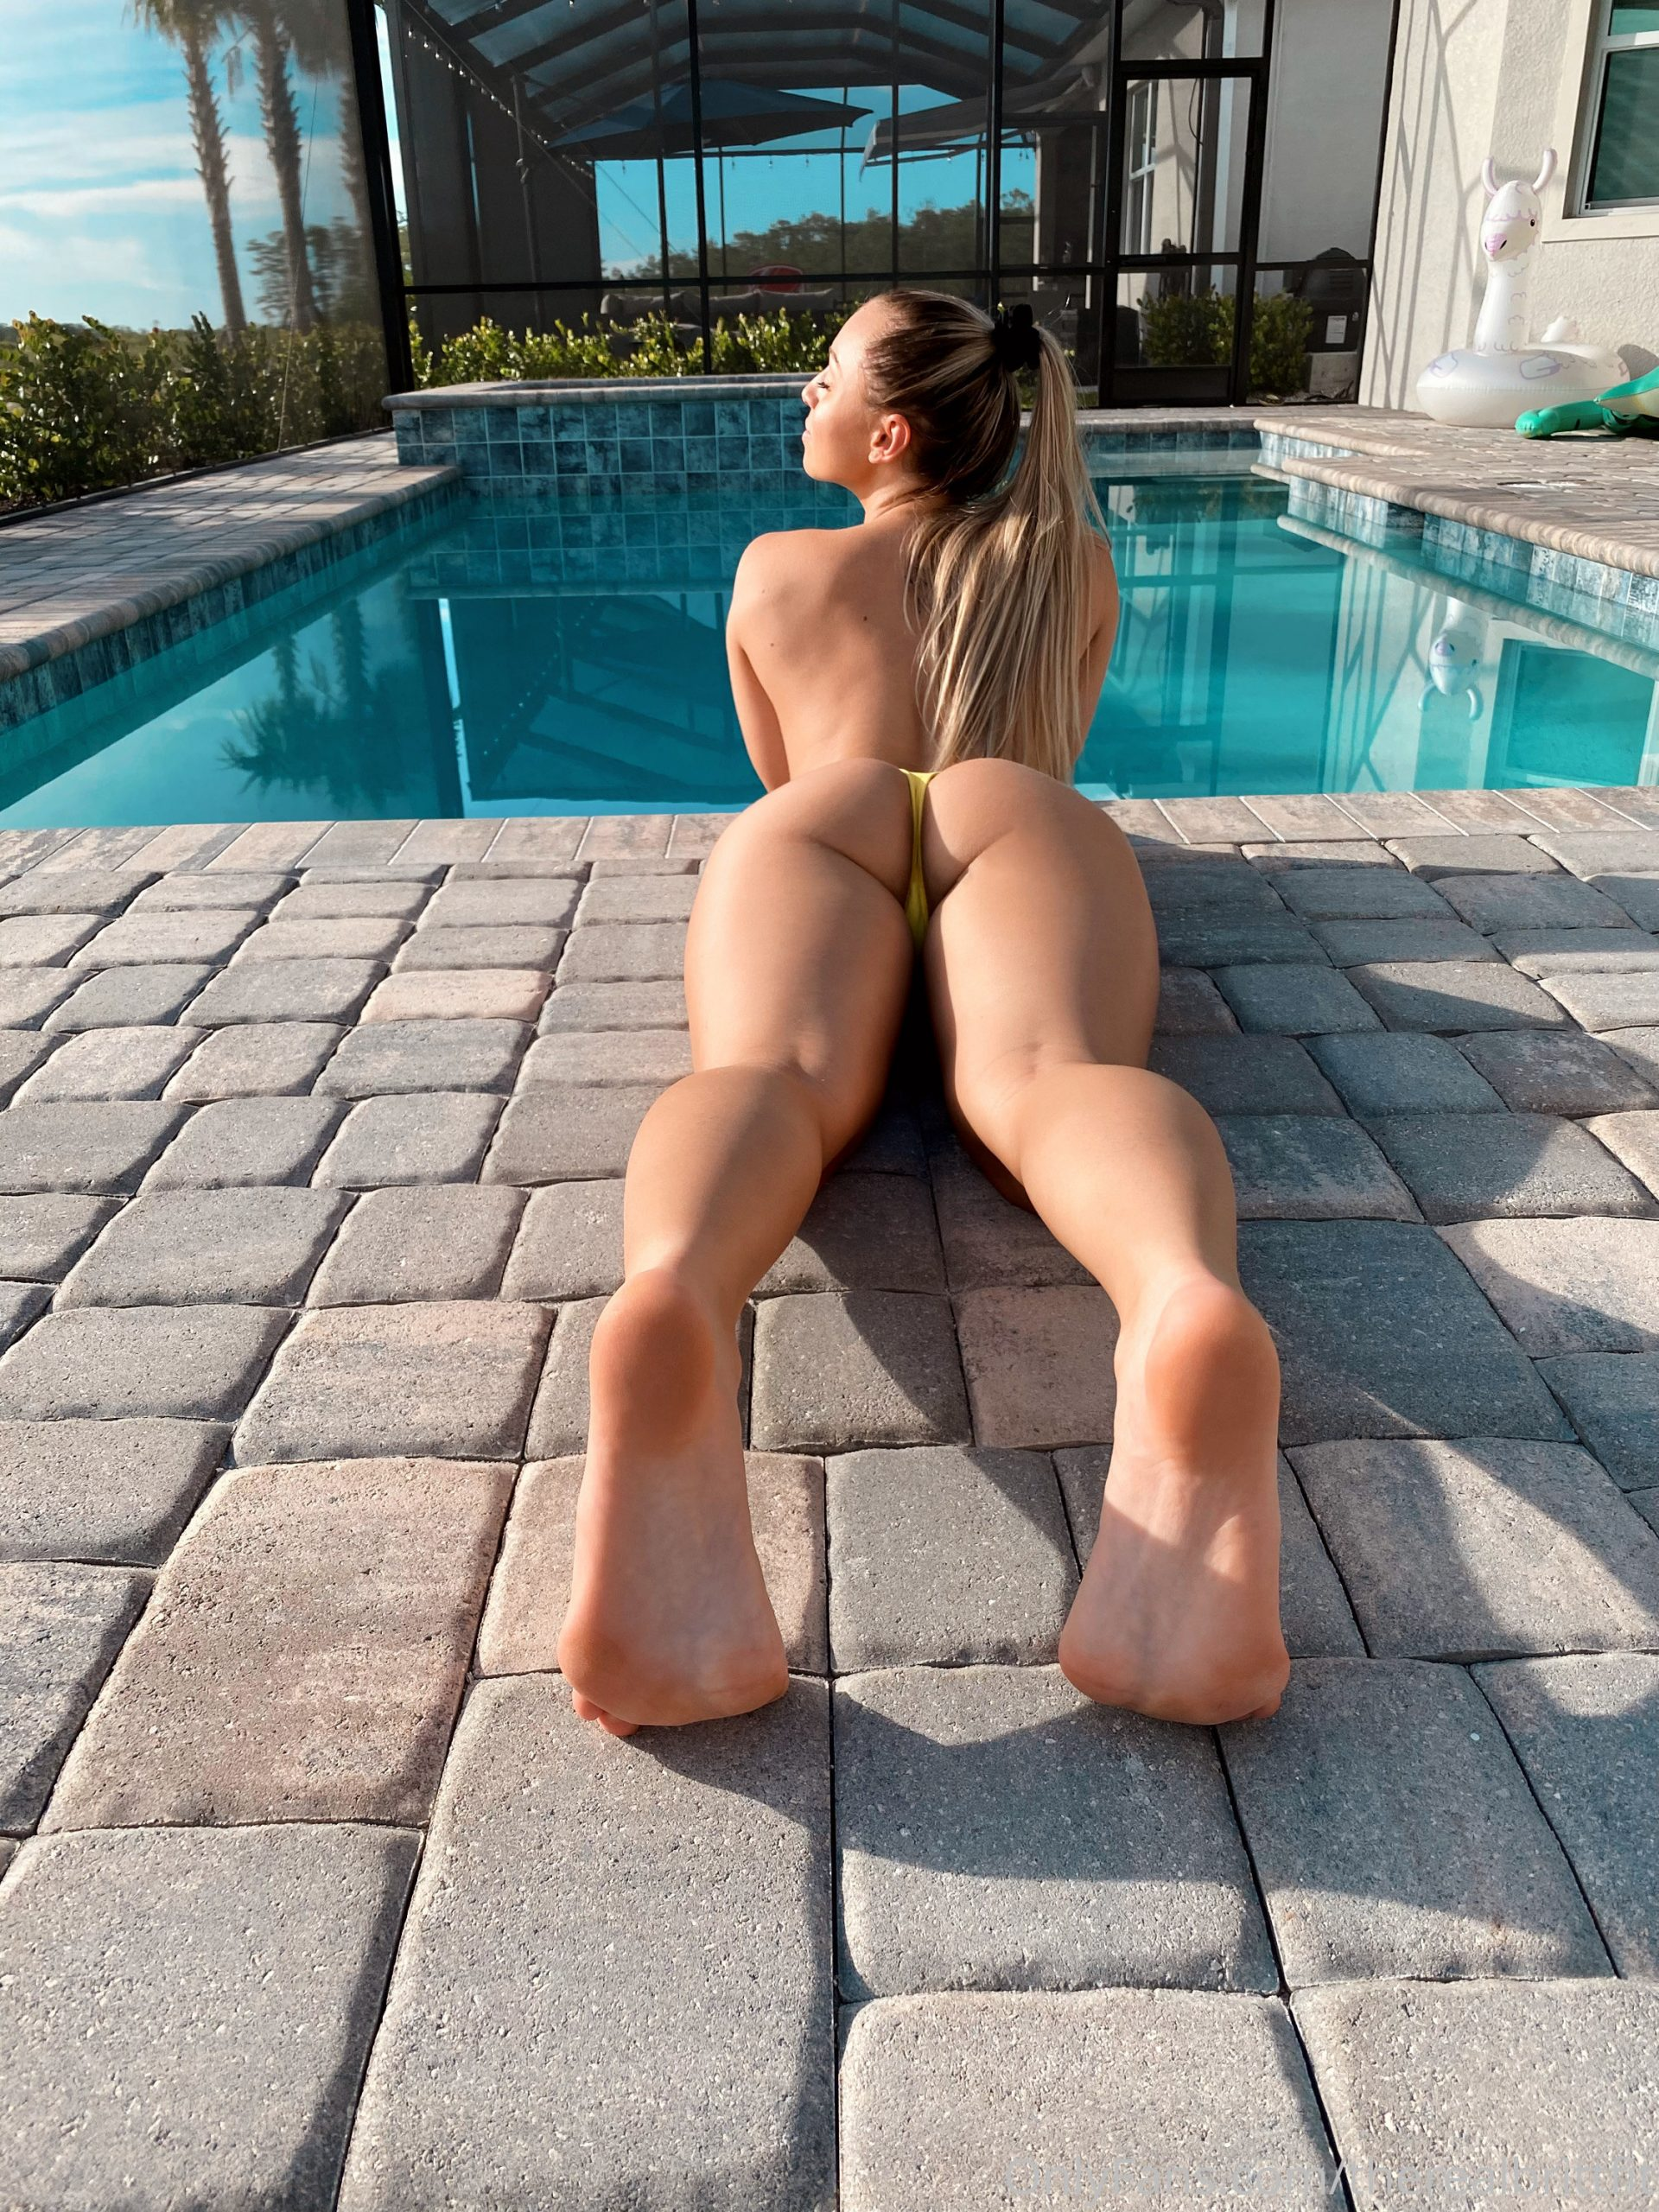 Onlyfans, Therealbrittfit, Nudes Leaked 0016